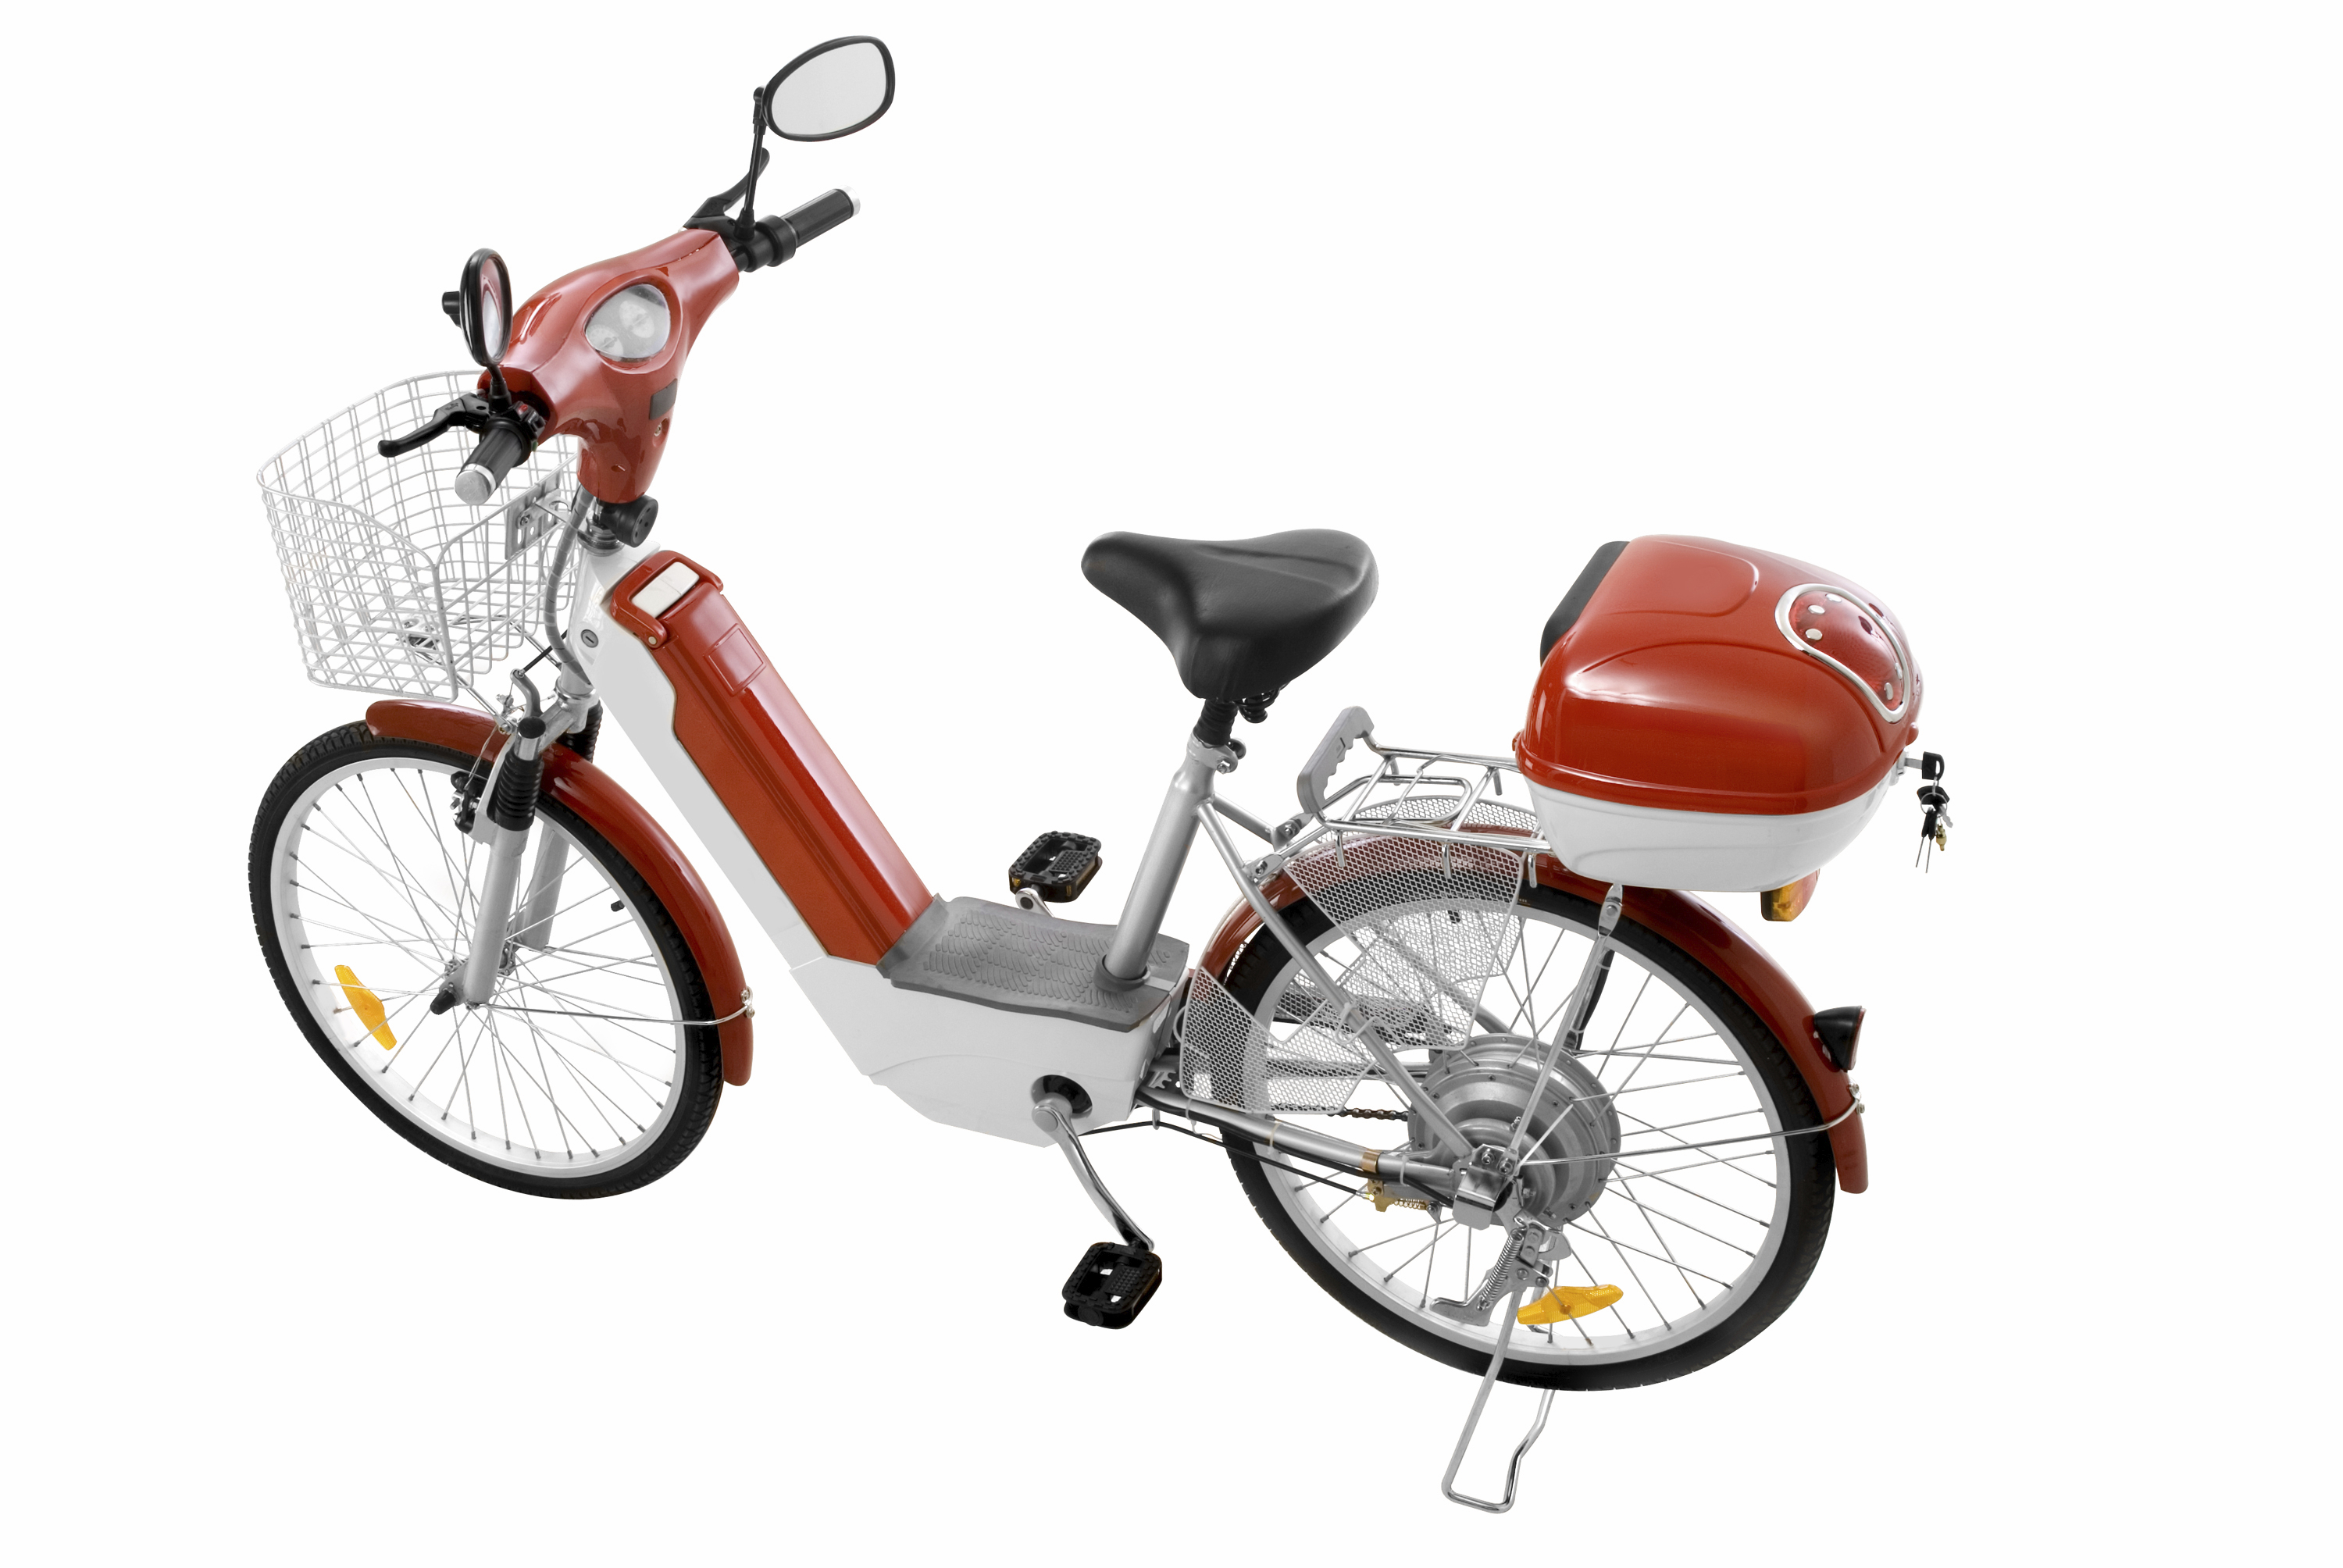 Florida Insurer To Offer Electric Bicycle Coverage